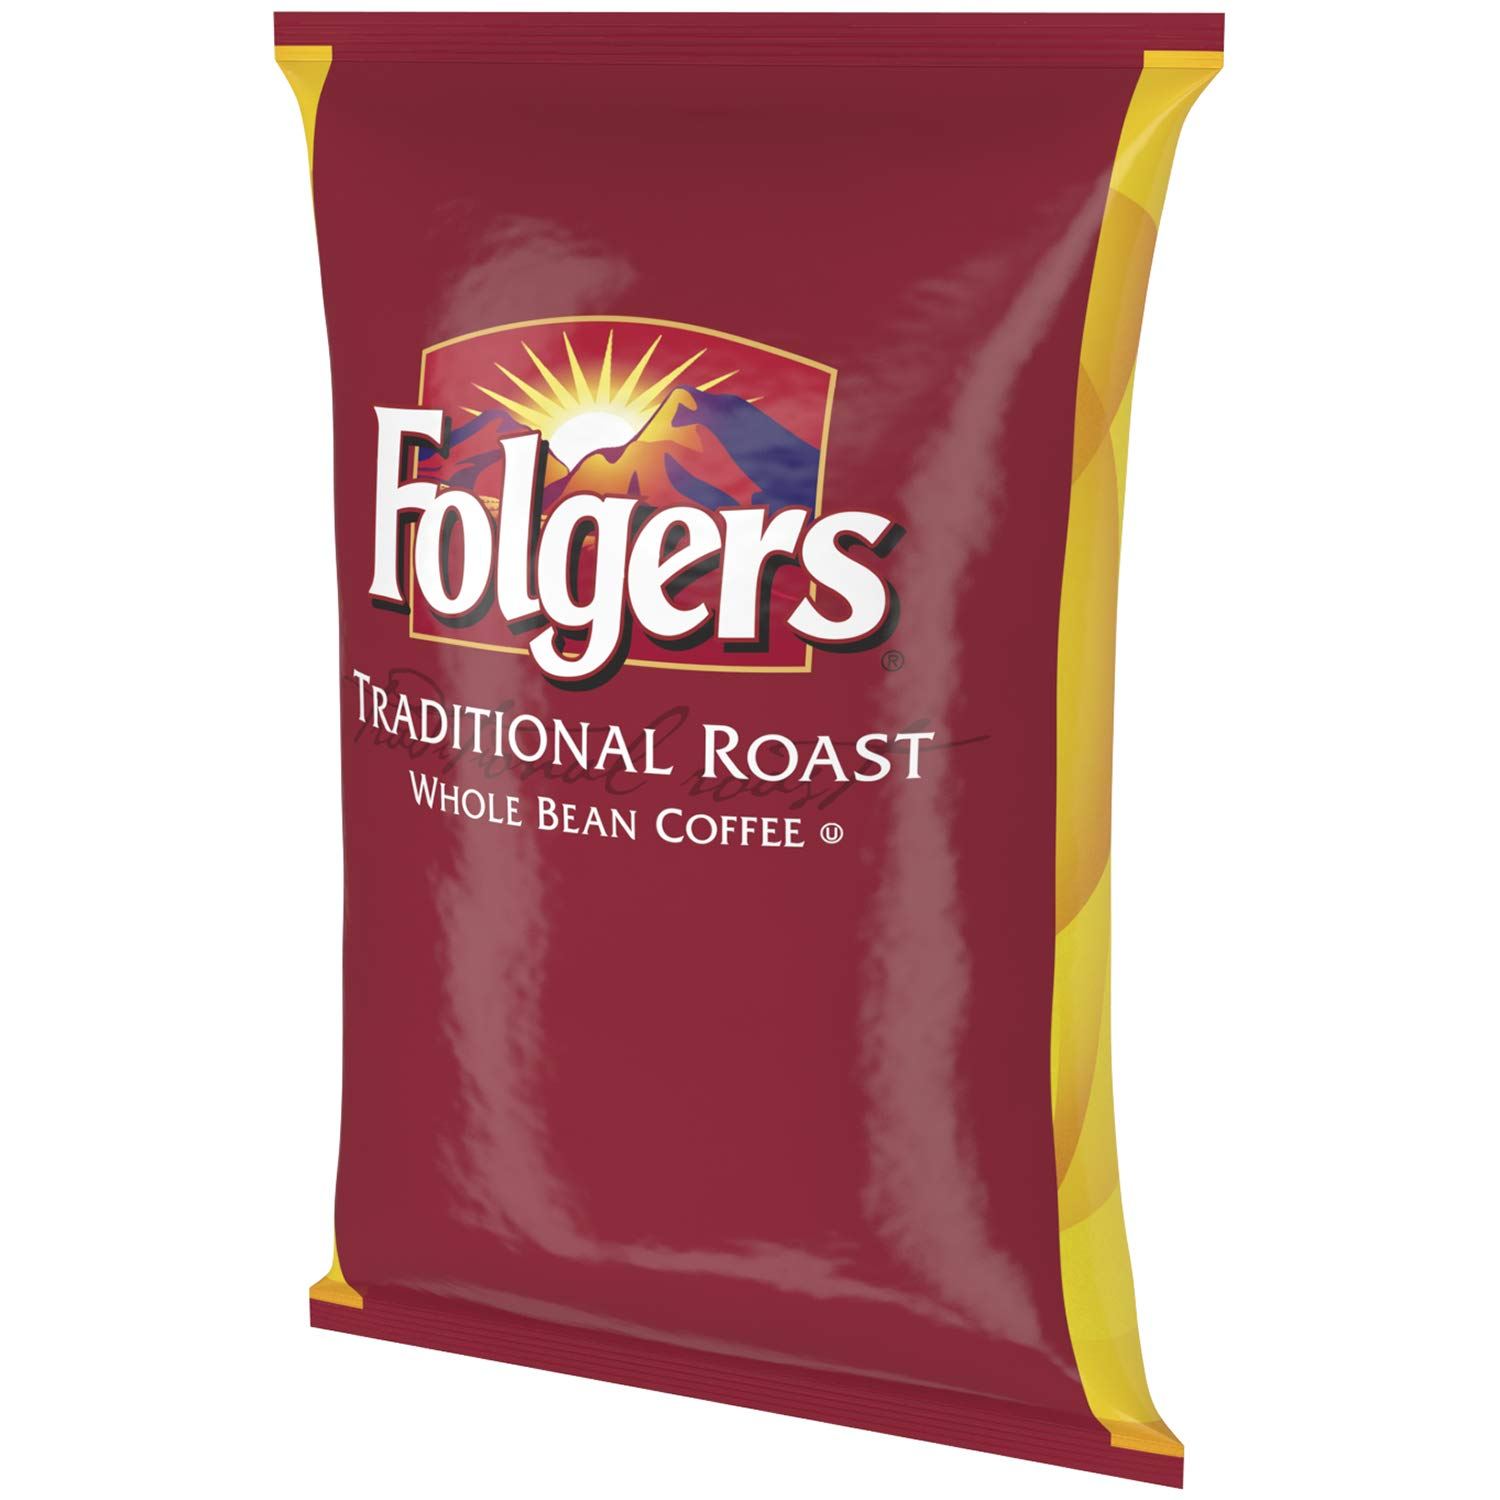 Folgers Traditional Roast Whole Bean Coffee, 80 Ounce Bag (5 pound)